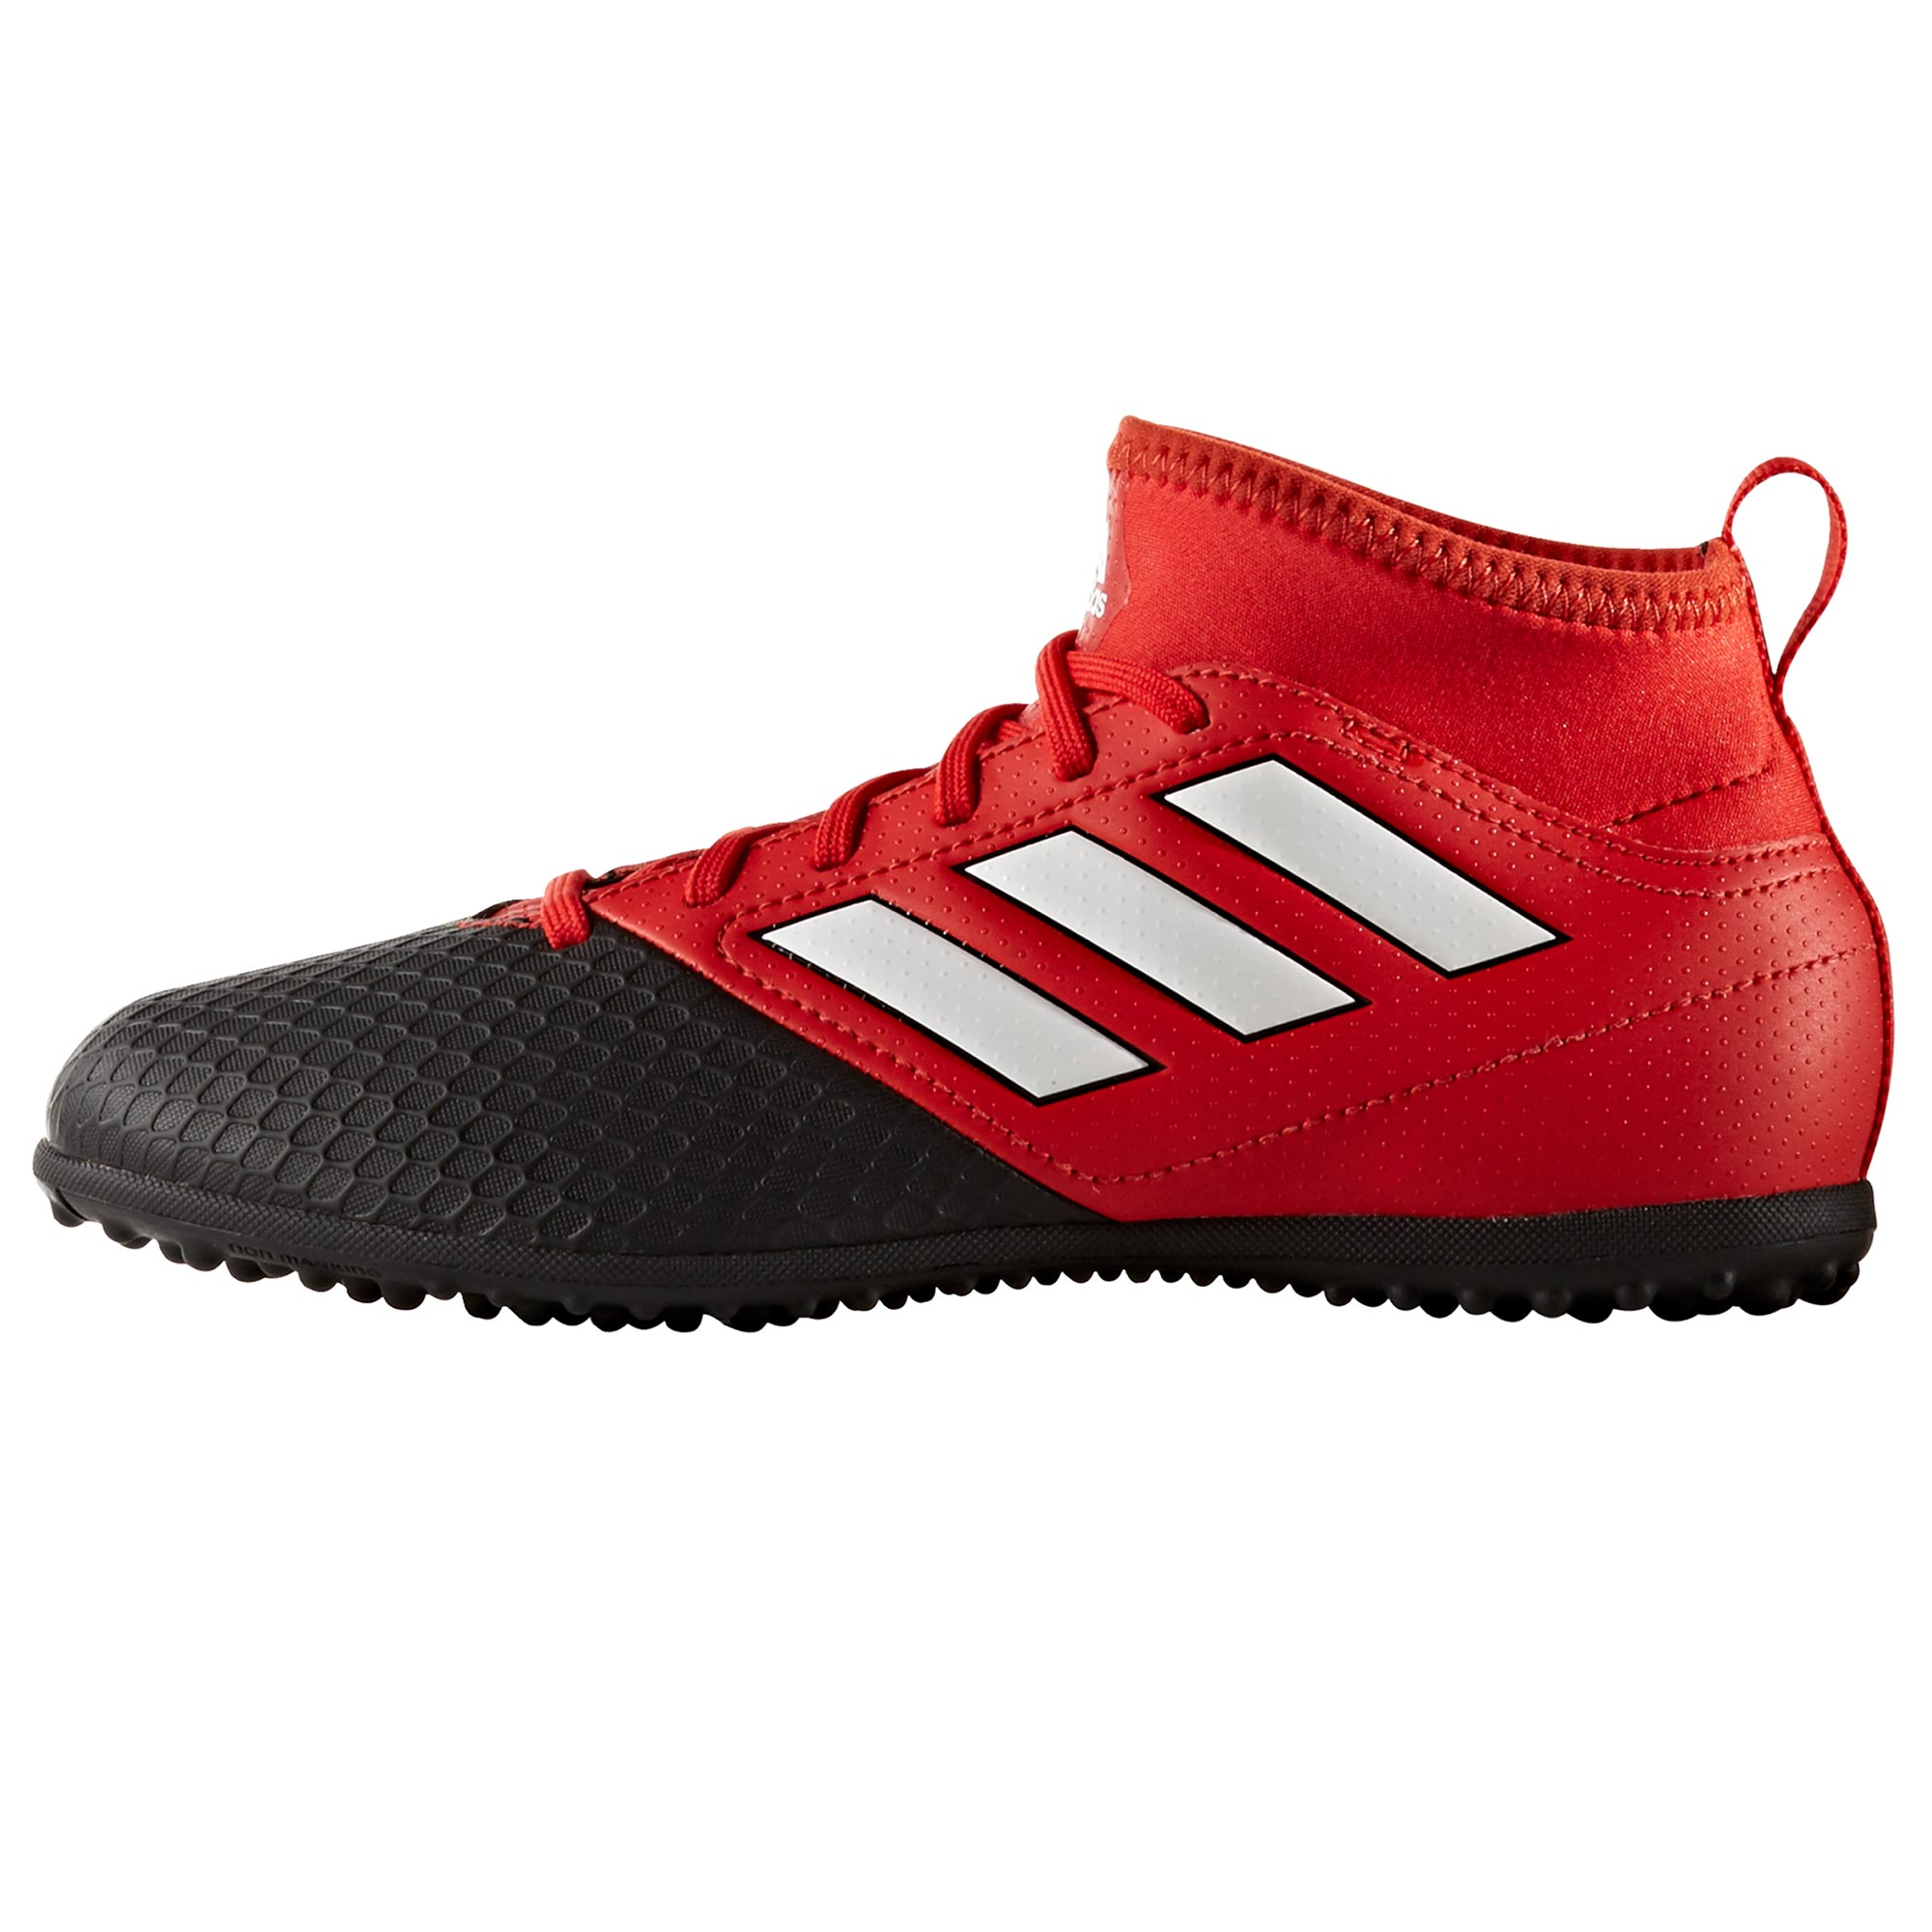 Image of adidas Ace 17.3 Astroturf Trainers - Red/White/Core Black - Kids